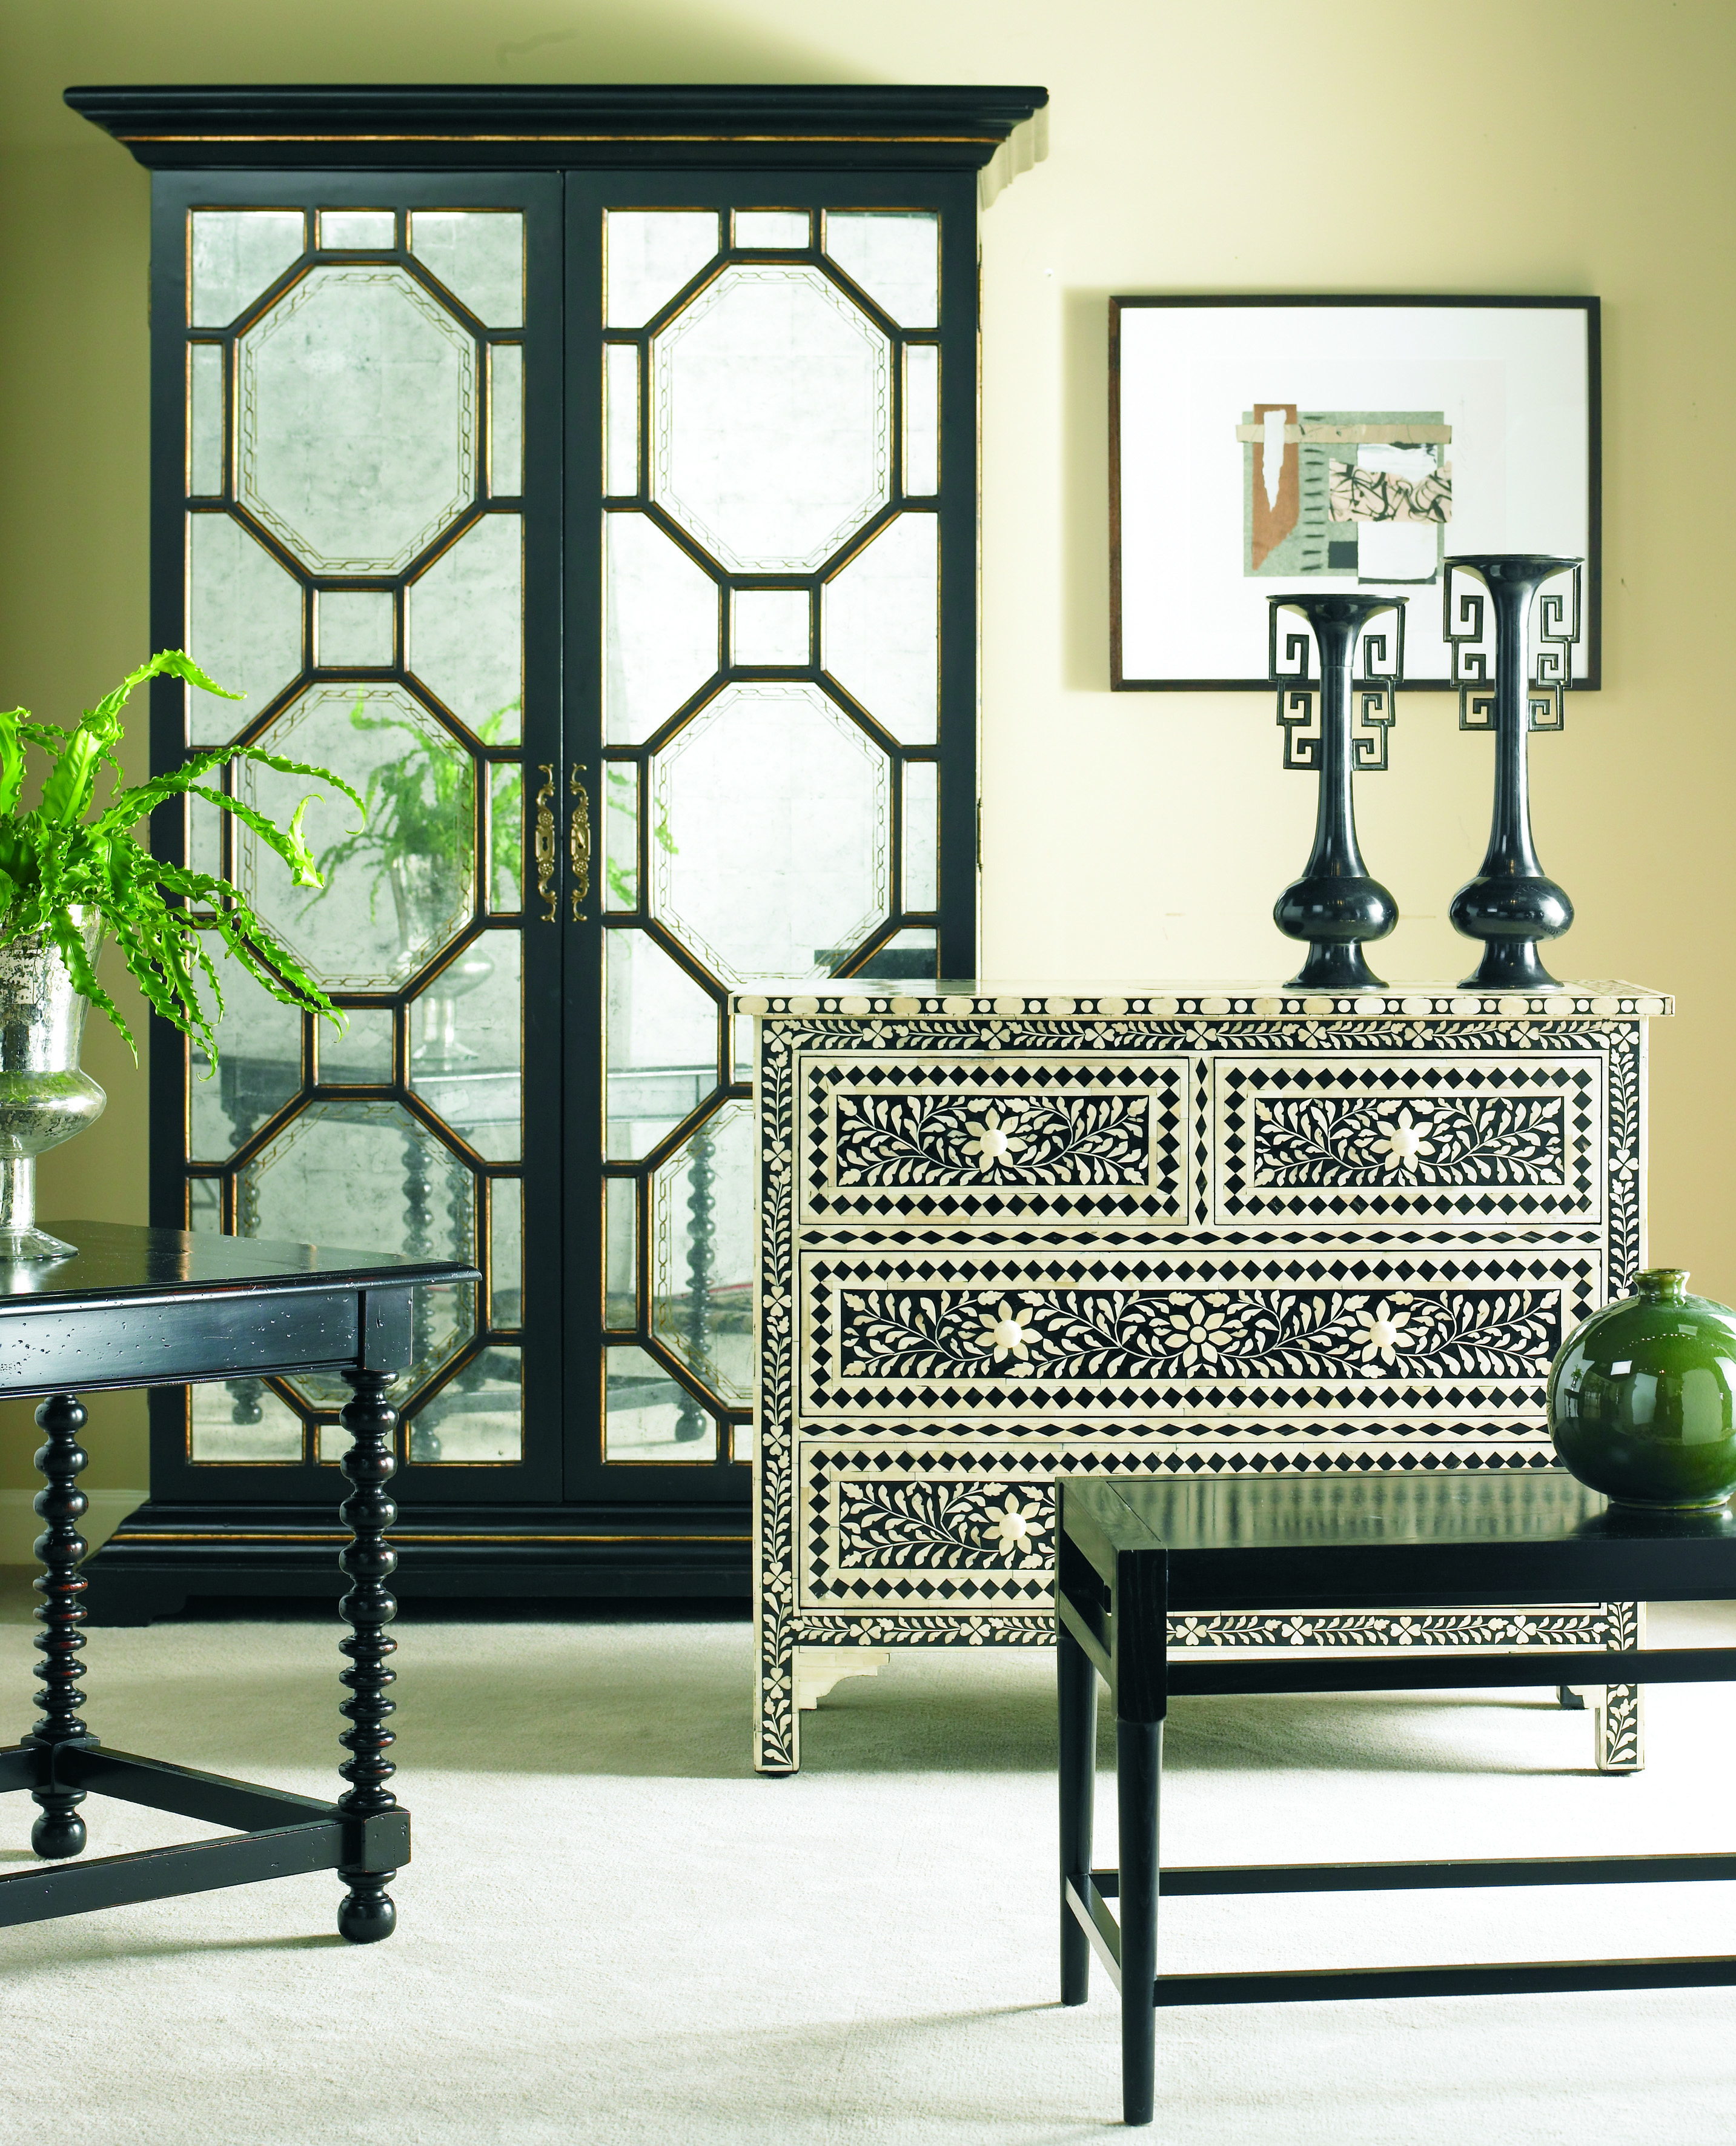 Entertaining in style is easy when you have a mirrored bar cabinet like this! - McNabb & Risley